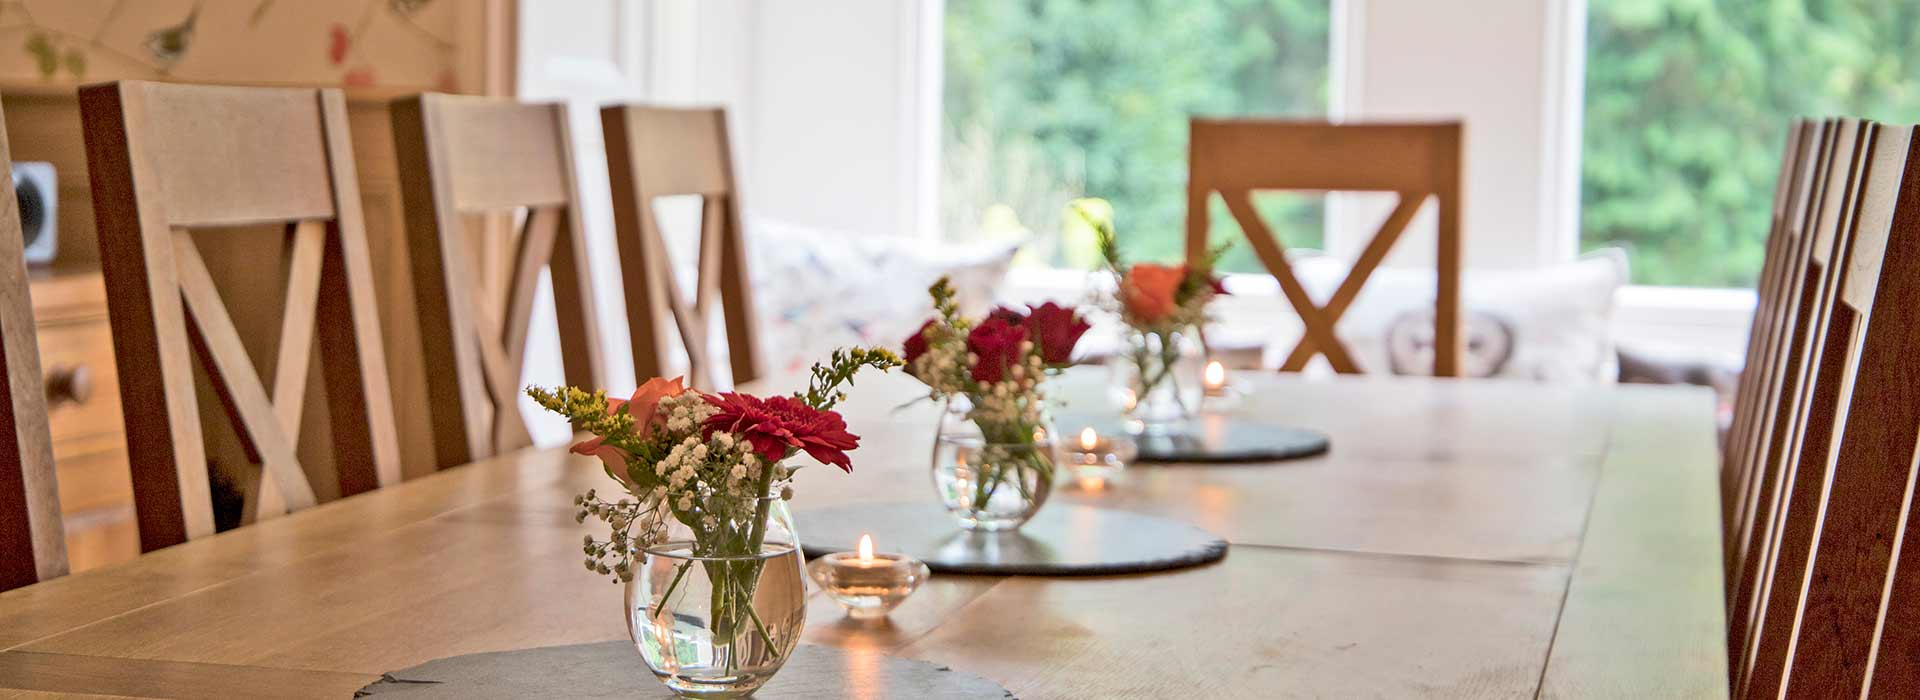 Dining room table with fresh flowers